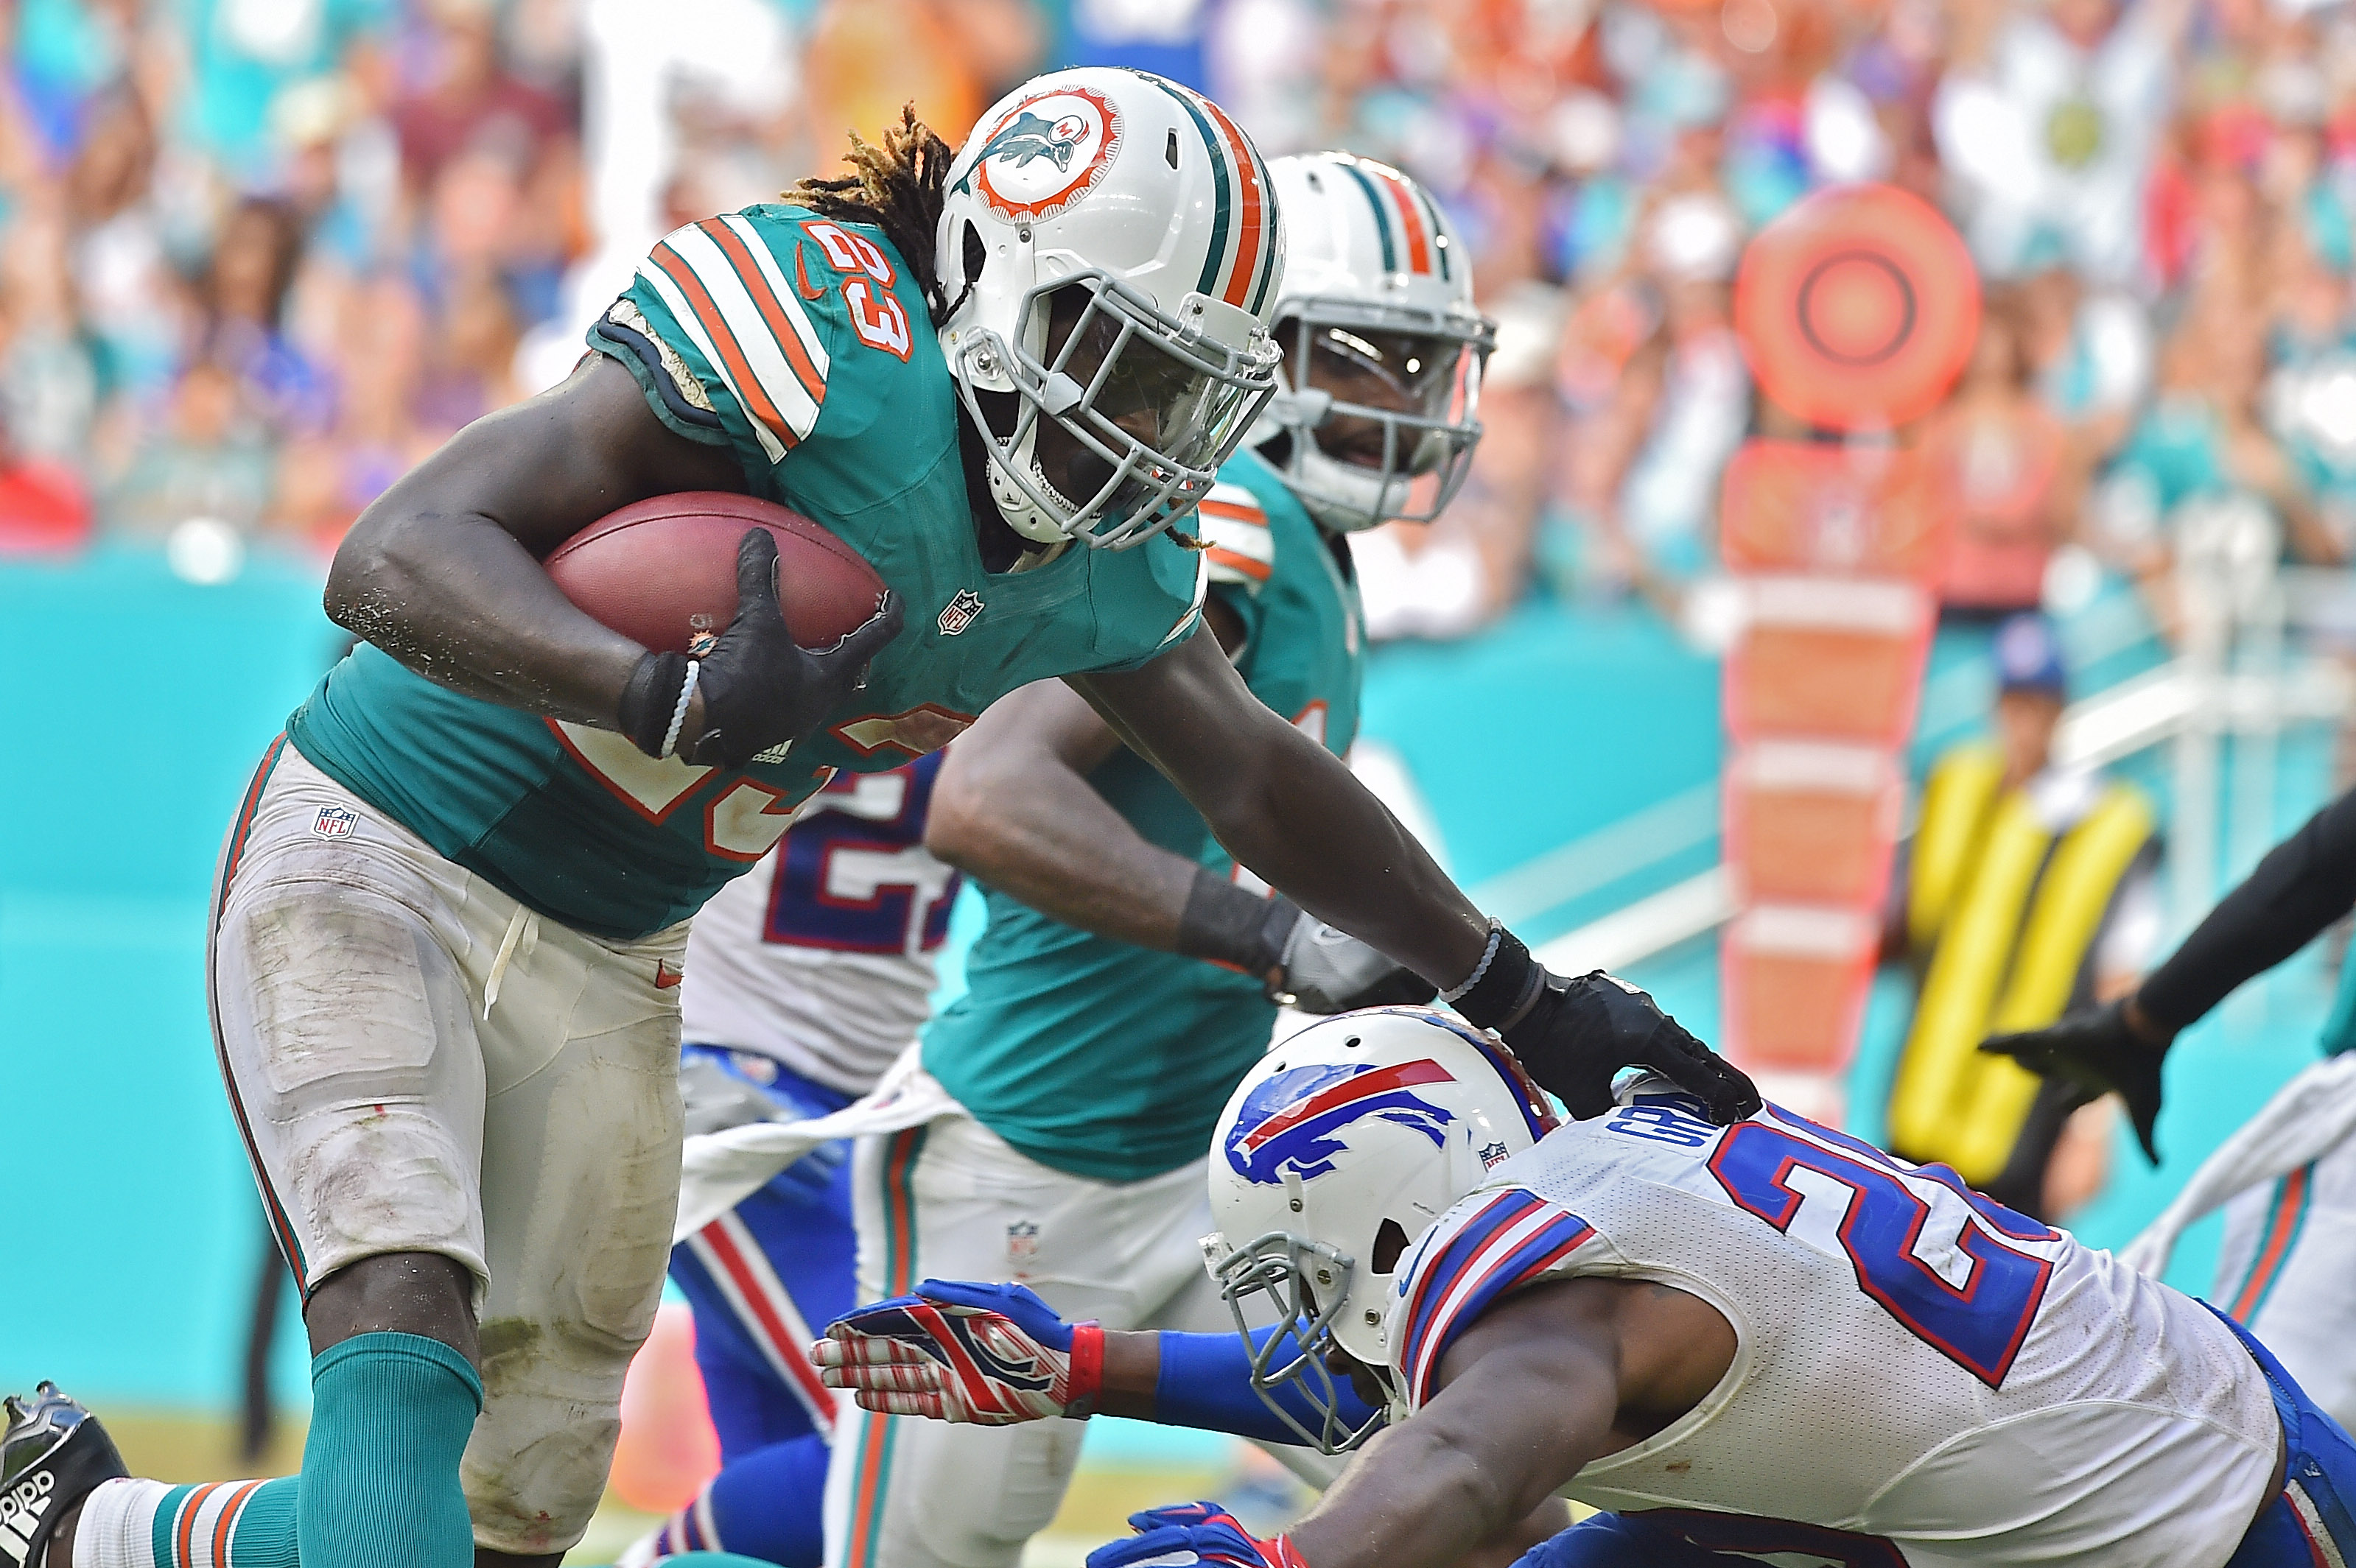 Jay Ajayi on Melvin Gordon That s my brother The Phinsider